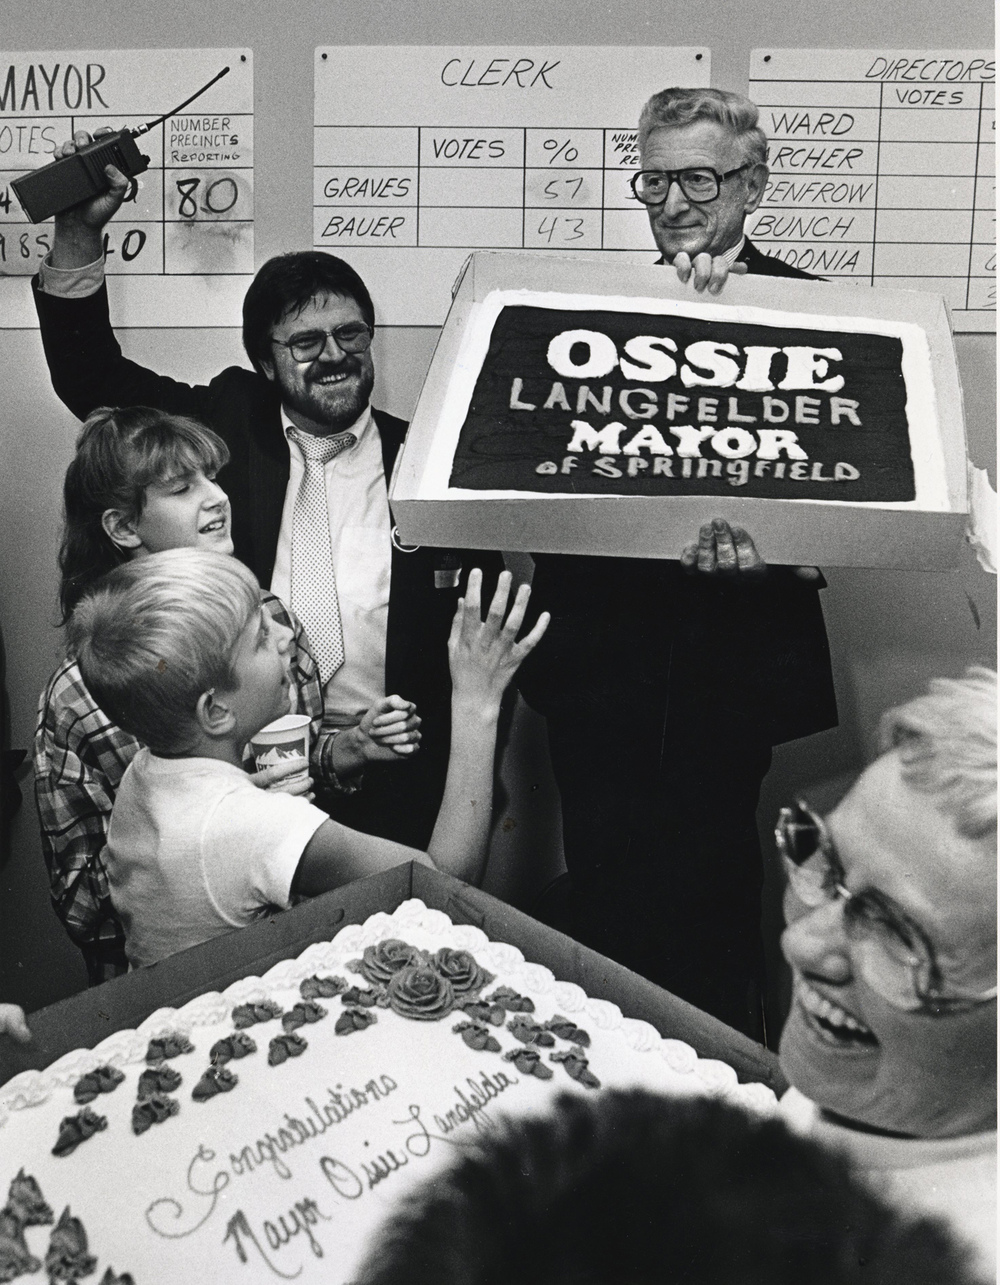 Ossie Langfelder is elected mayor November 1987. File/The State Journal-Register